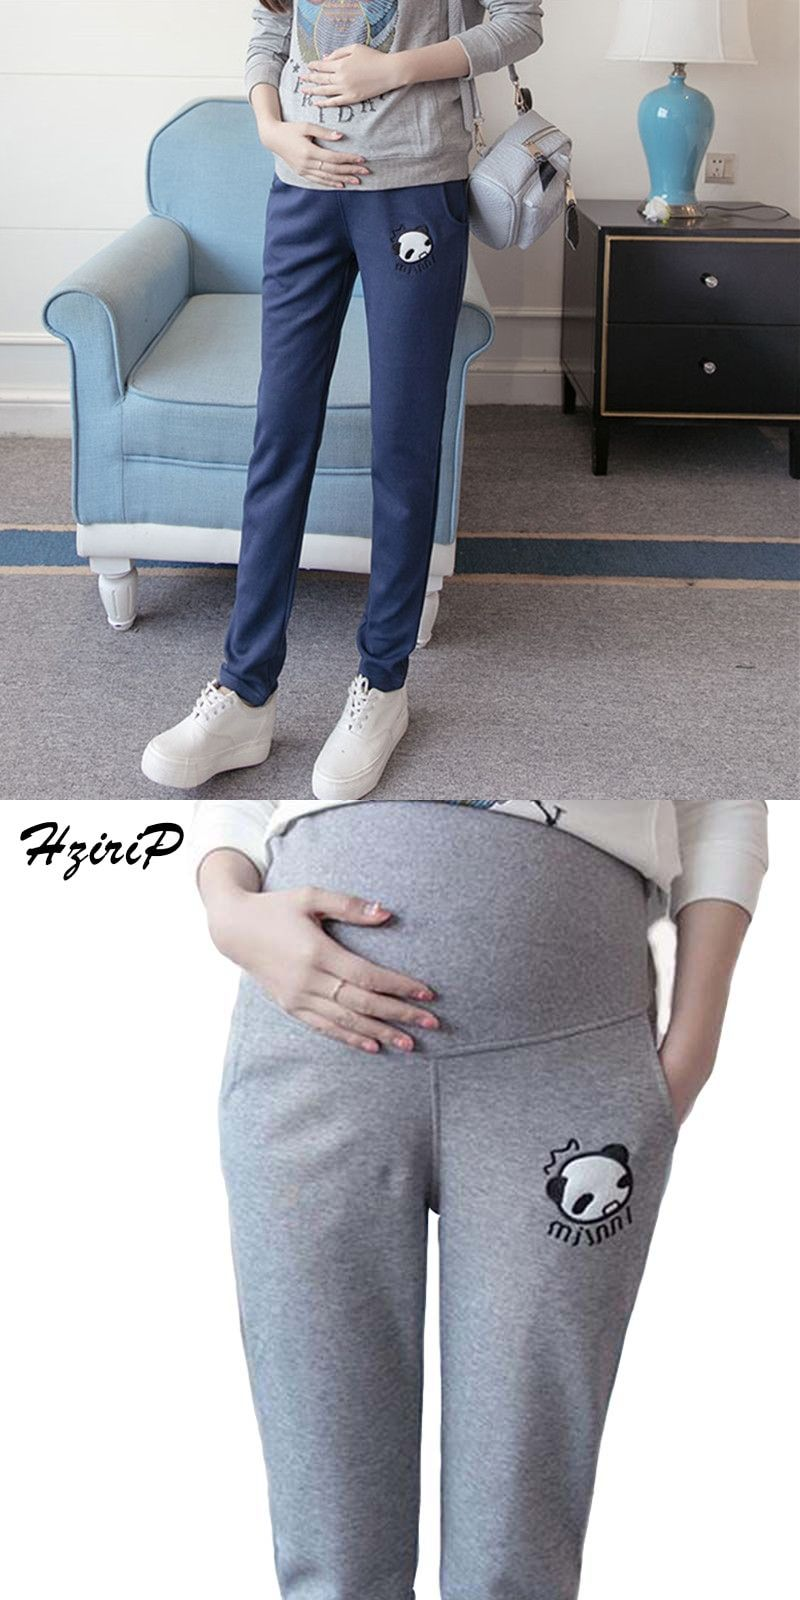 d6587f1f83c Hrizip Casual Maternity Pants for Pregnant Women Maternity Clothes for Summer  2016 Overalls Pregnancy Pants Maternity